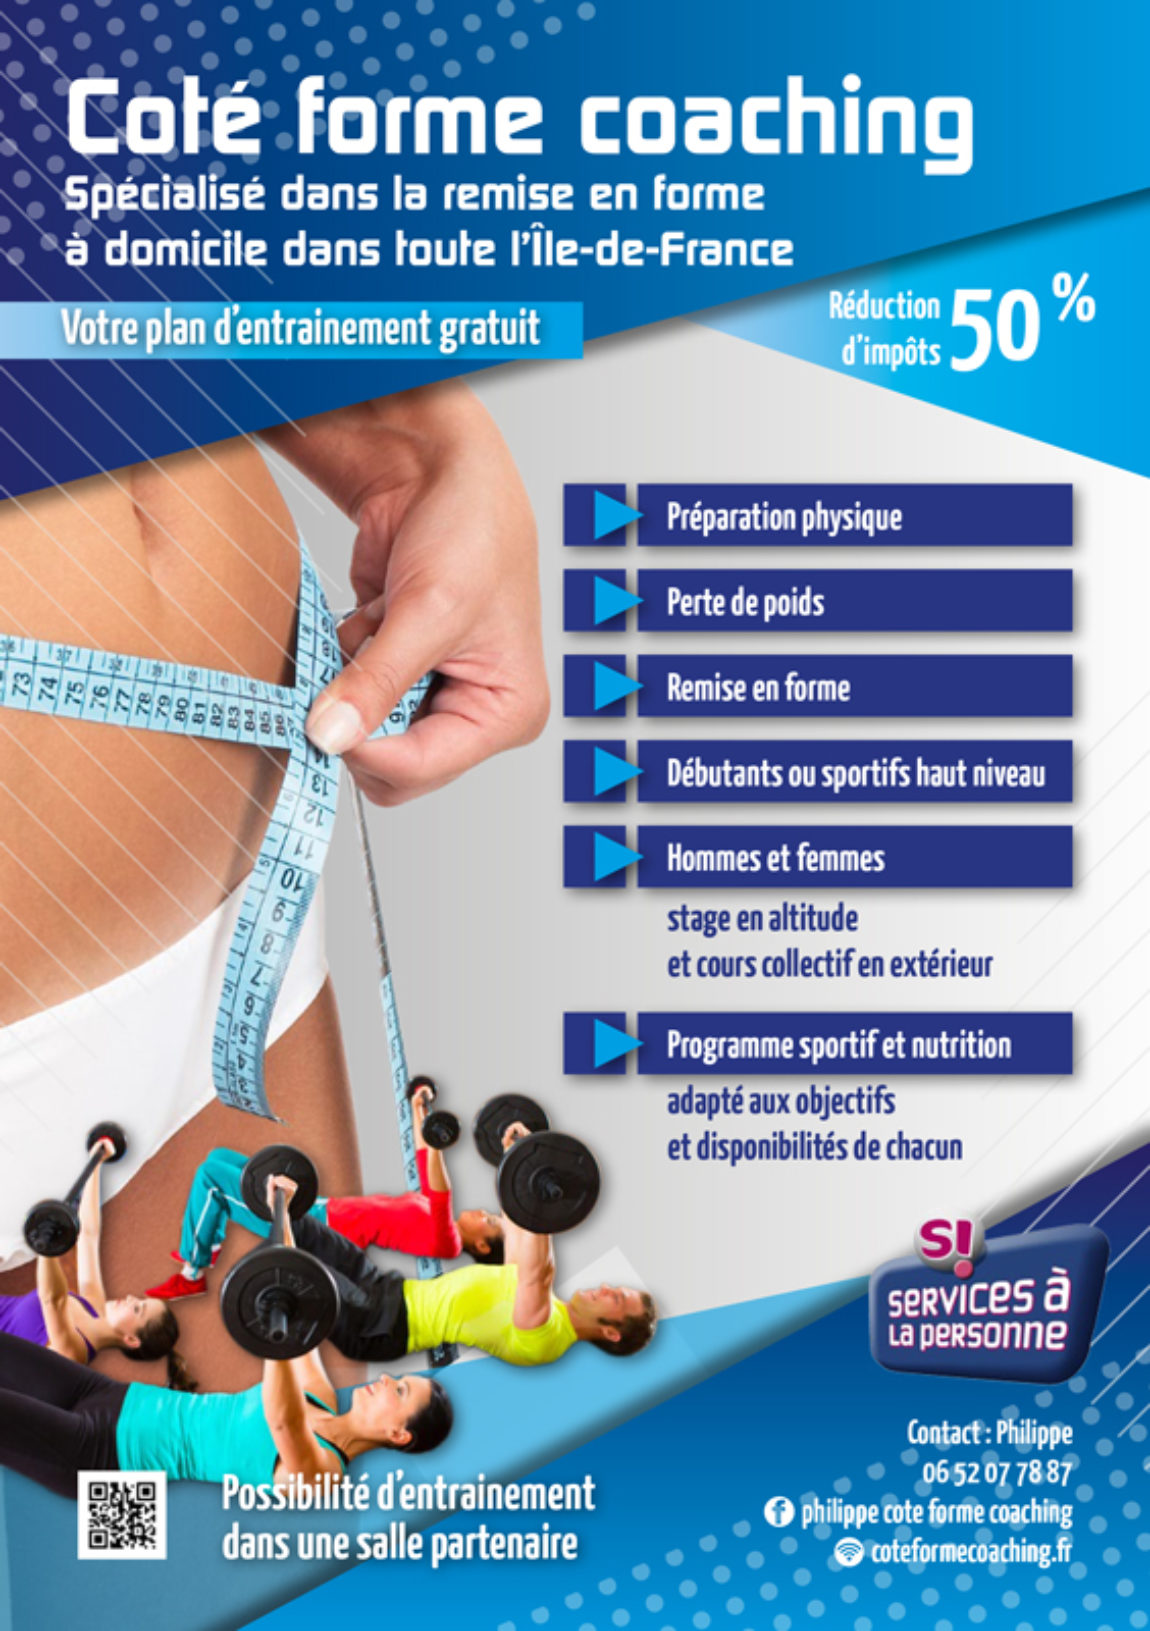 Cote_forme_coaching_Flyer